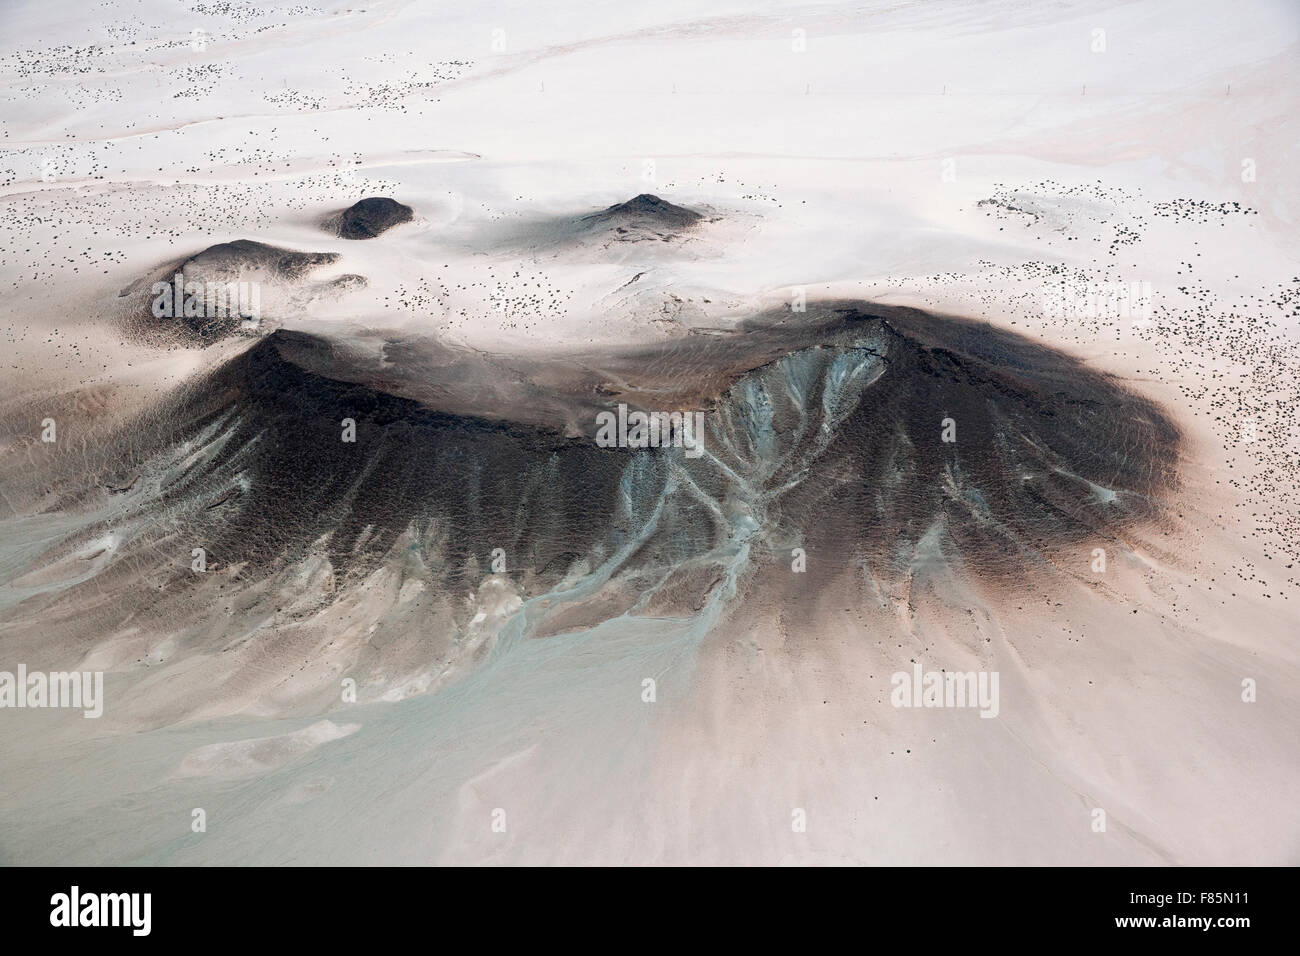 Aerial View of Desert near Luderitz, Namibia - Stock Image